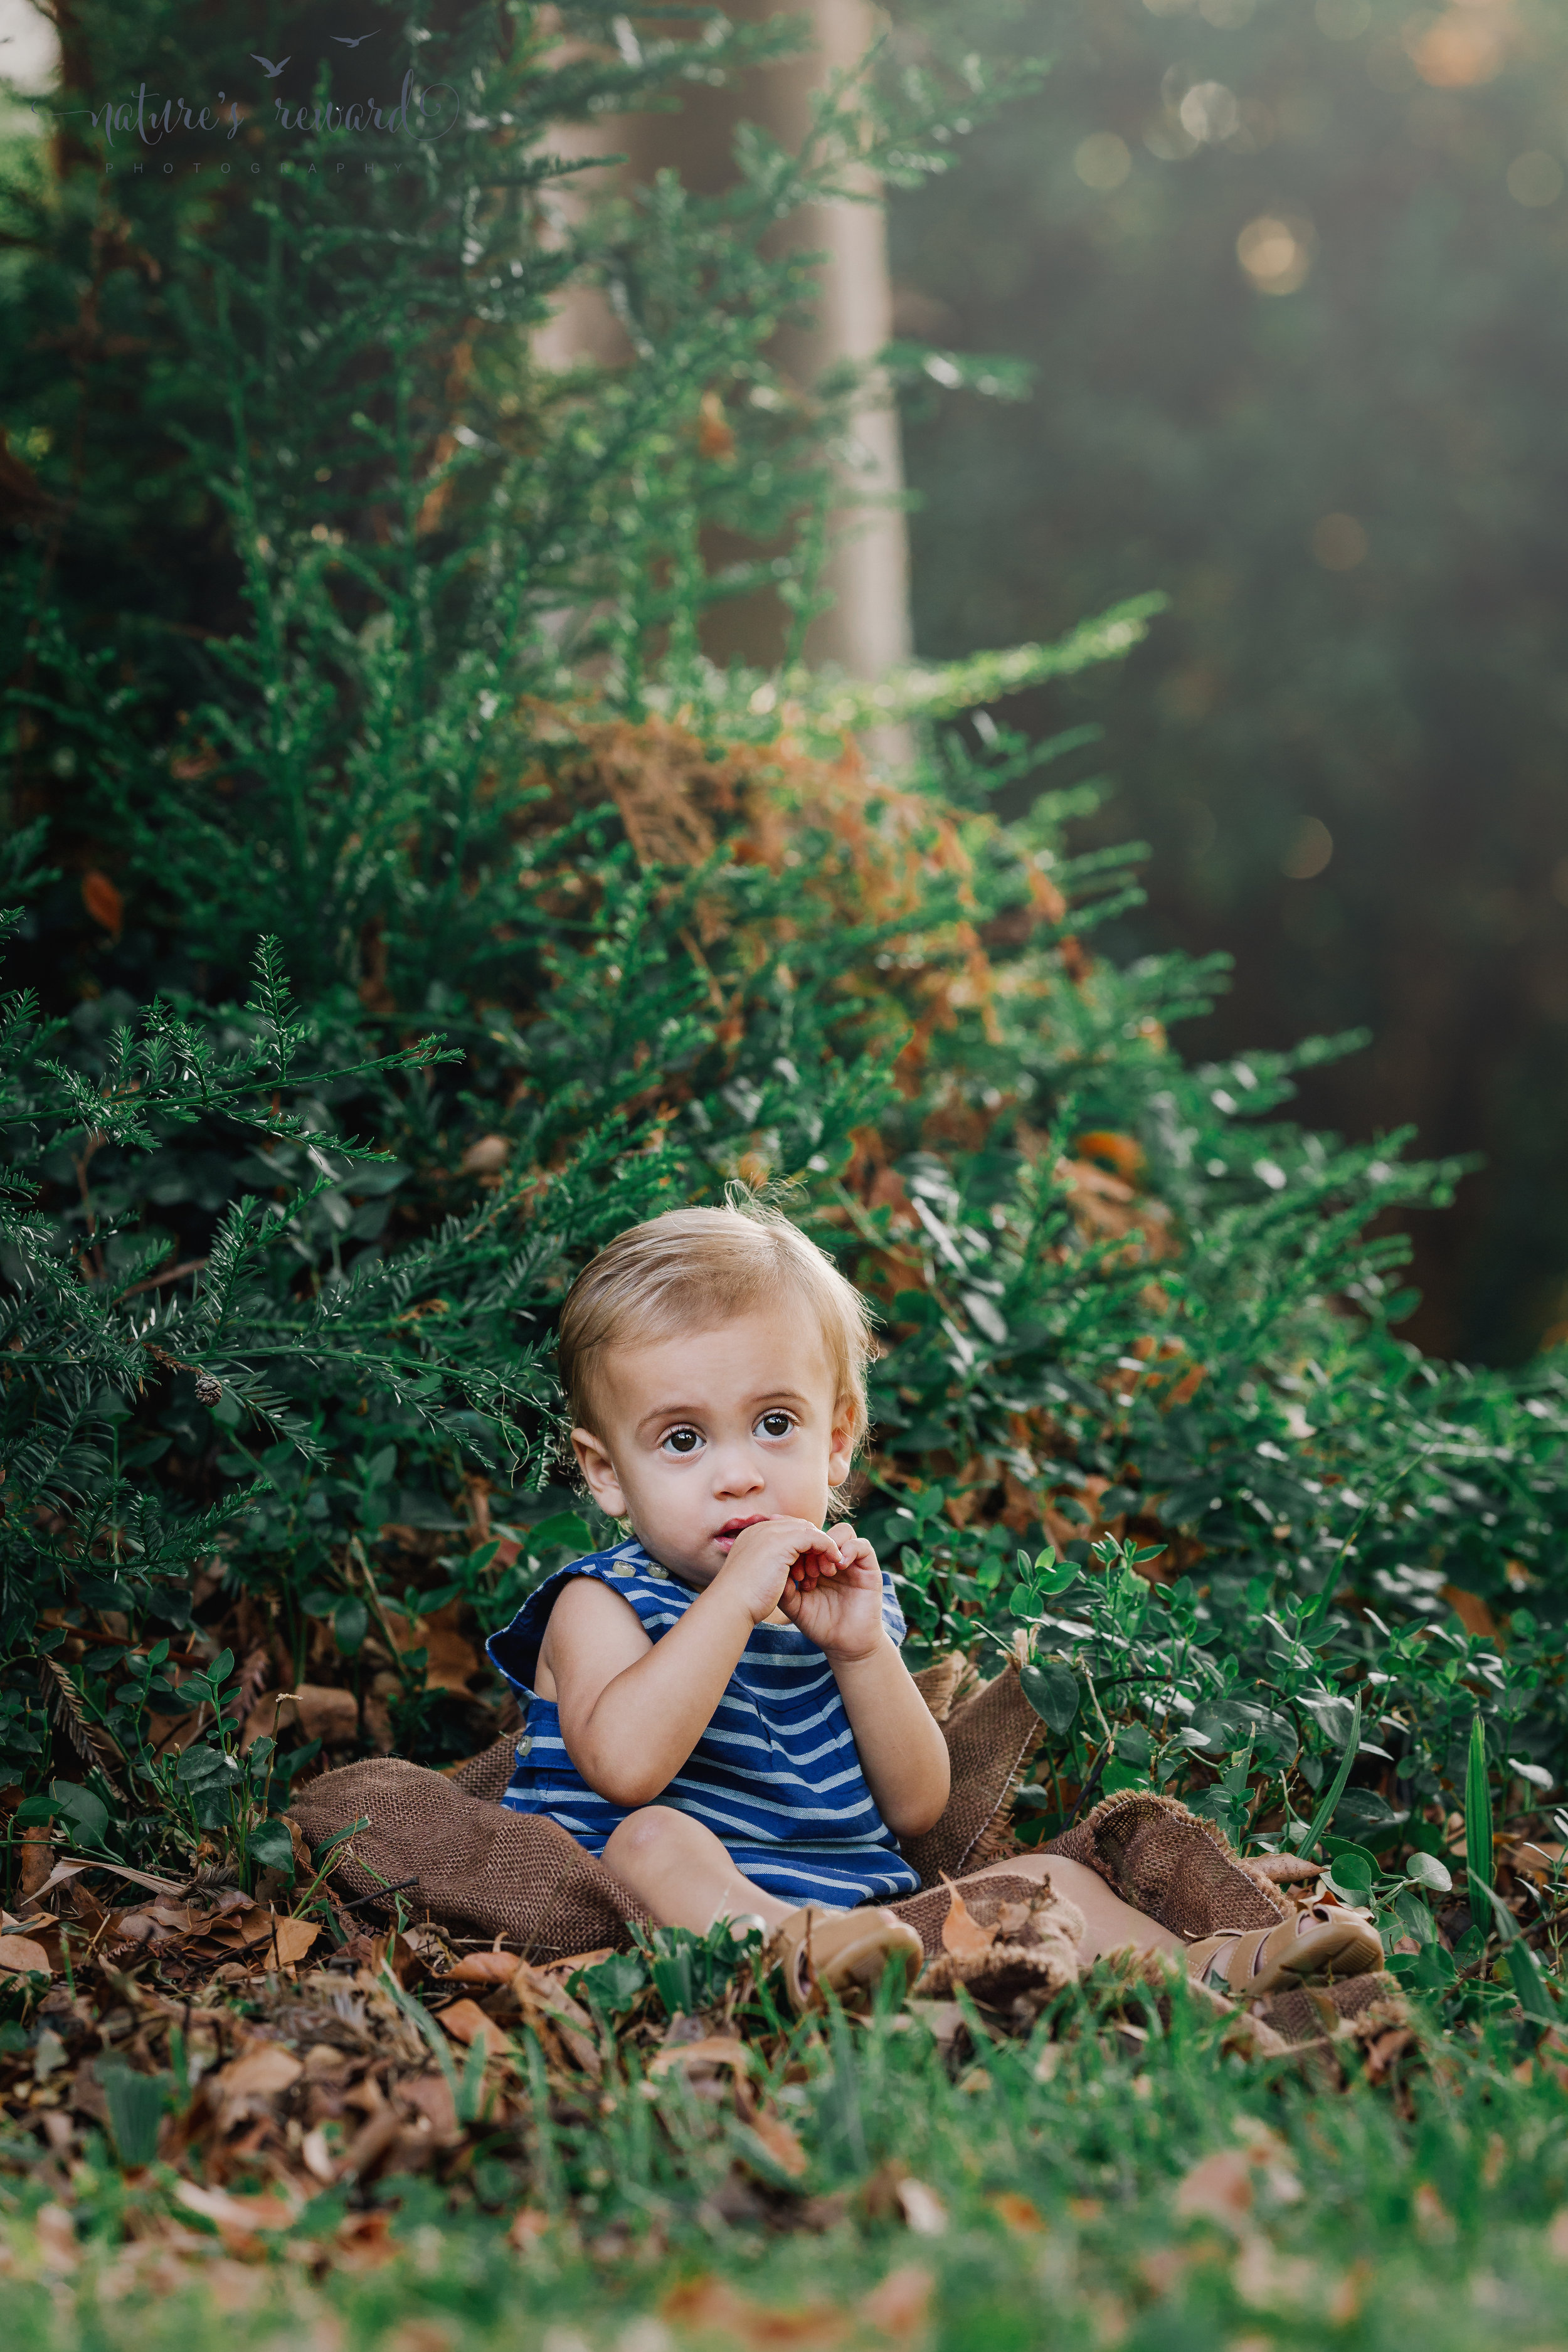 Gorgeous Baby this vintage inspired portrait by Nature's Reward Photography